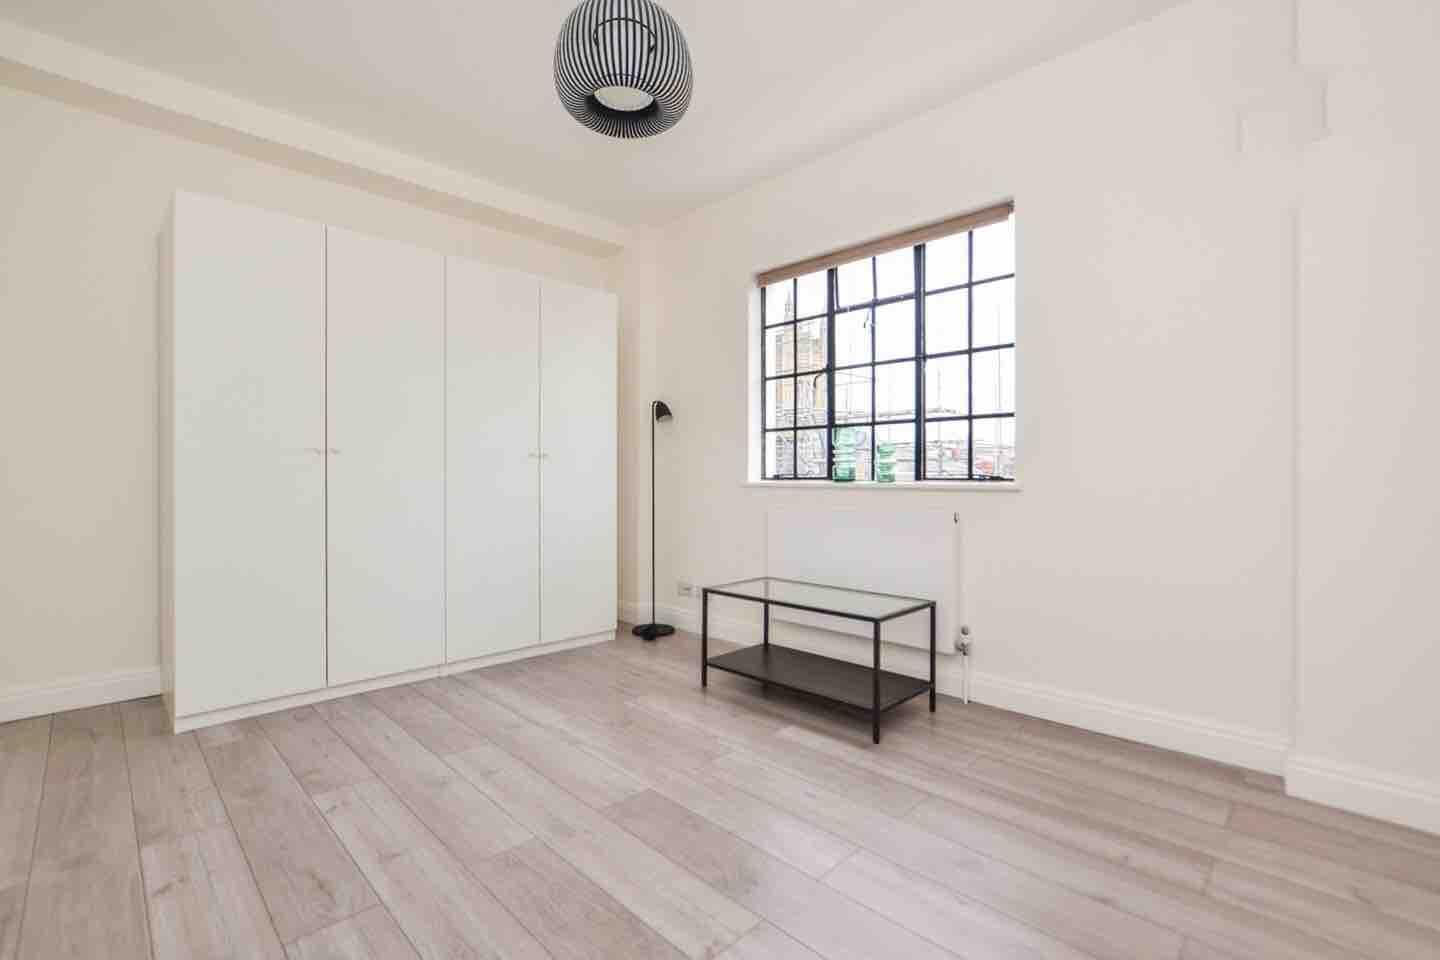 1 room in Mayfair, London, W1J 8AJ RoomsLocal image